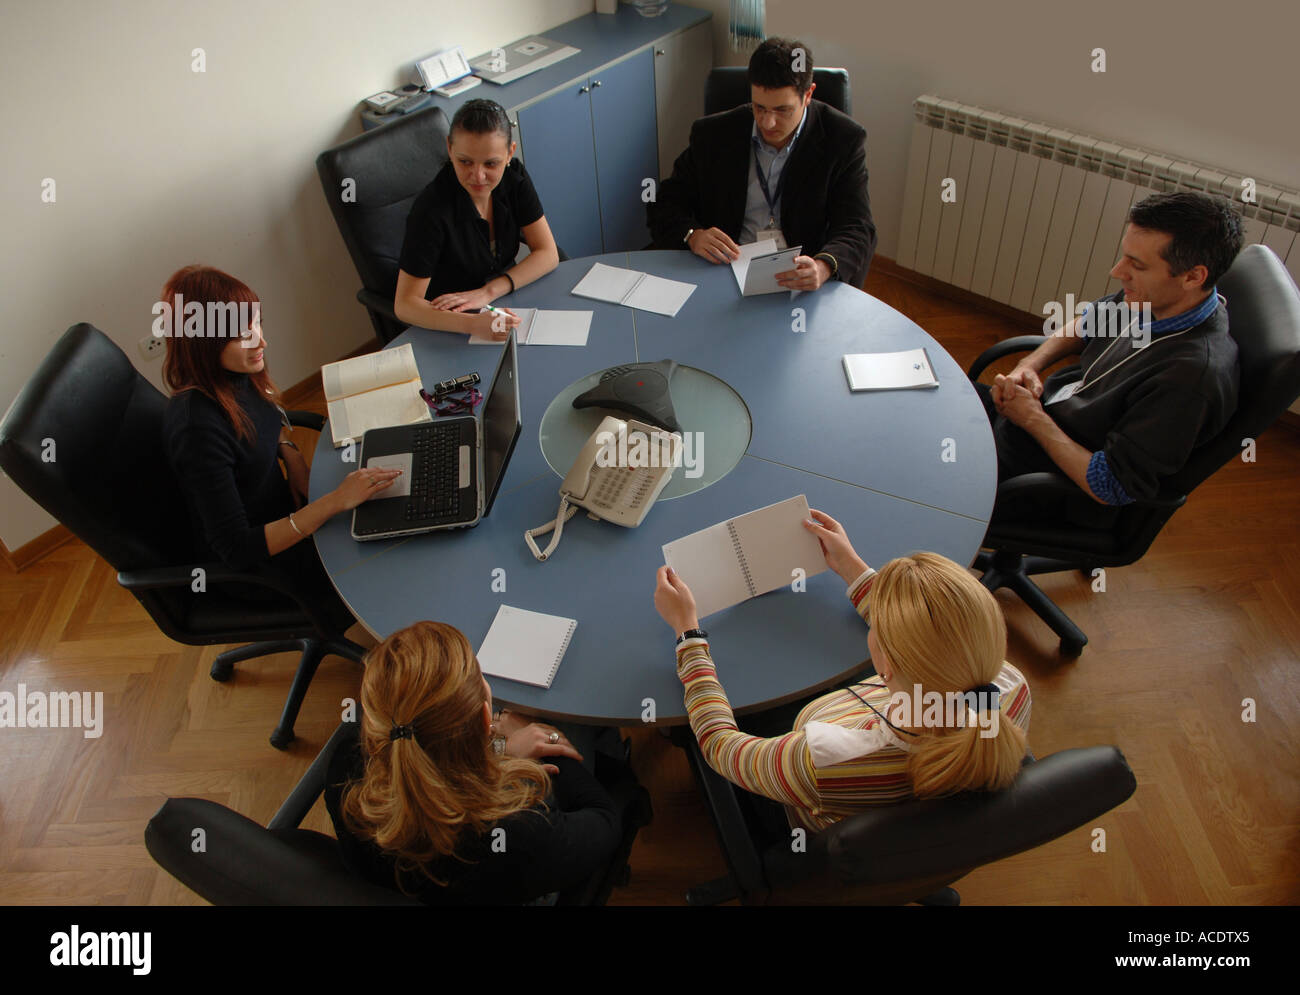 Round Table Business Meeting